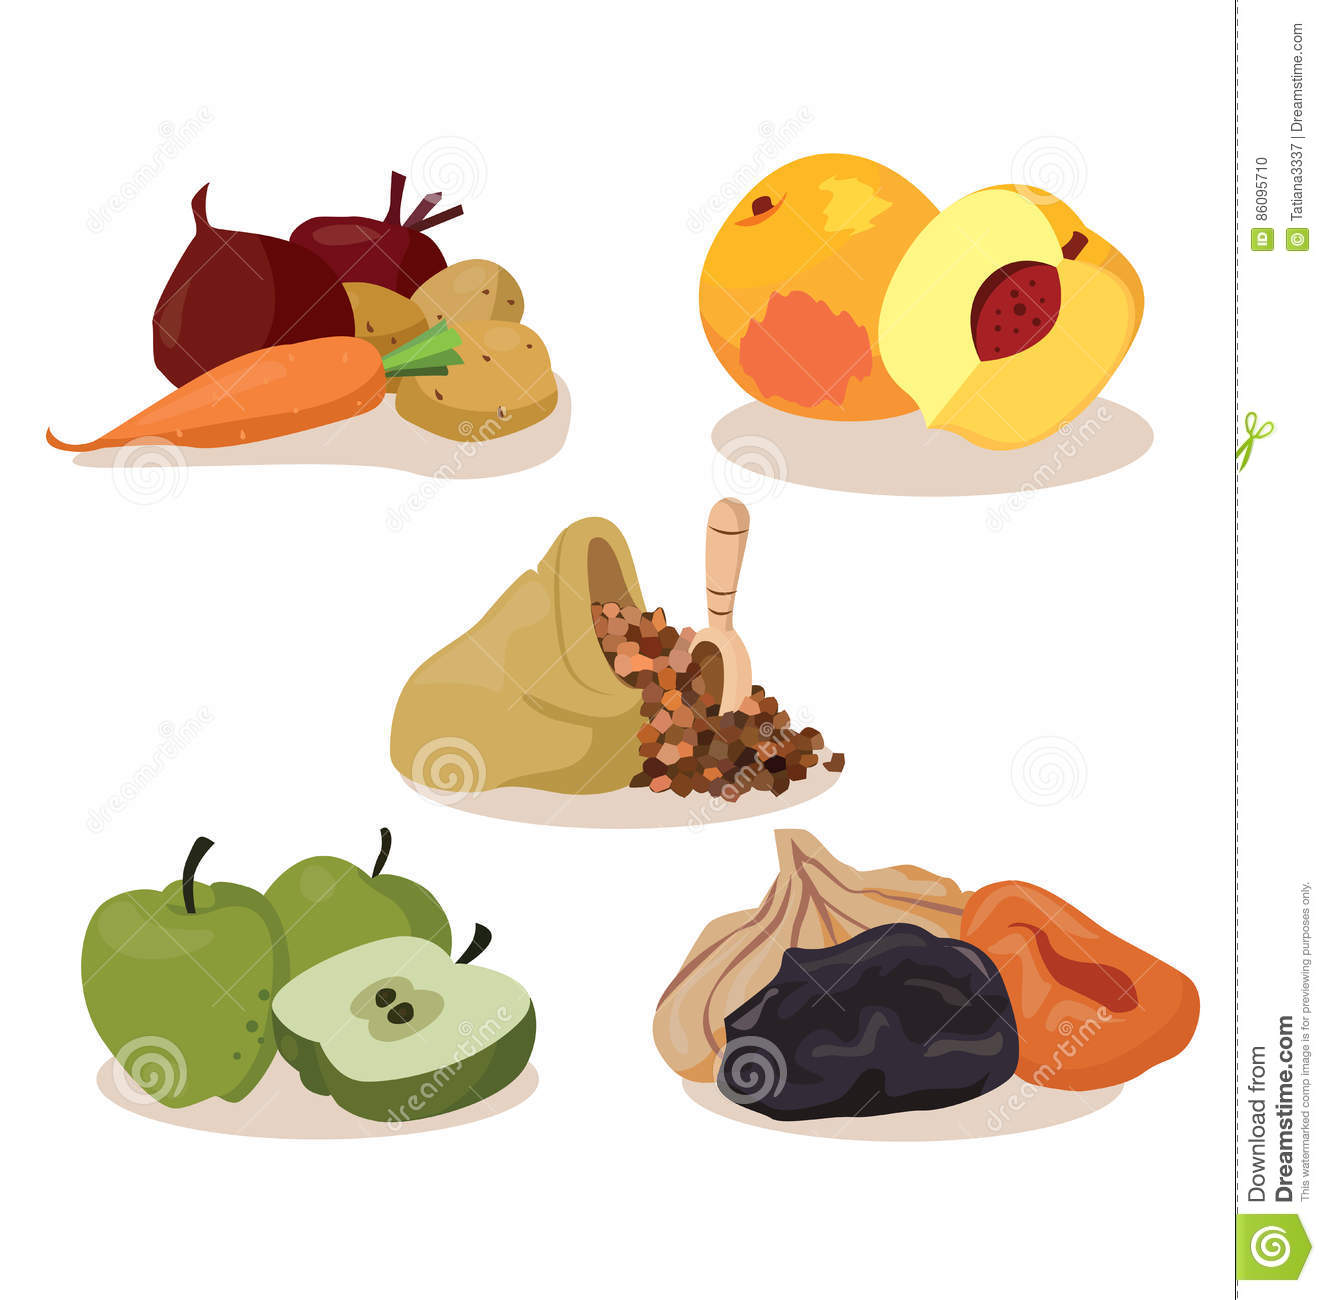 Vegetables, Peaches, Cereal, Apples, Dried Fruit Stock Vector.